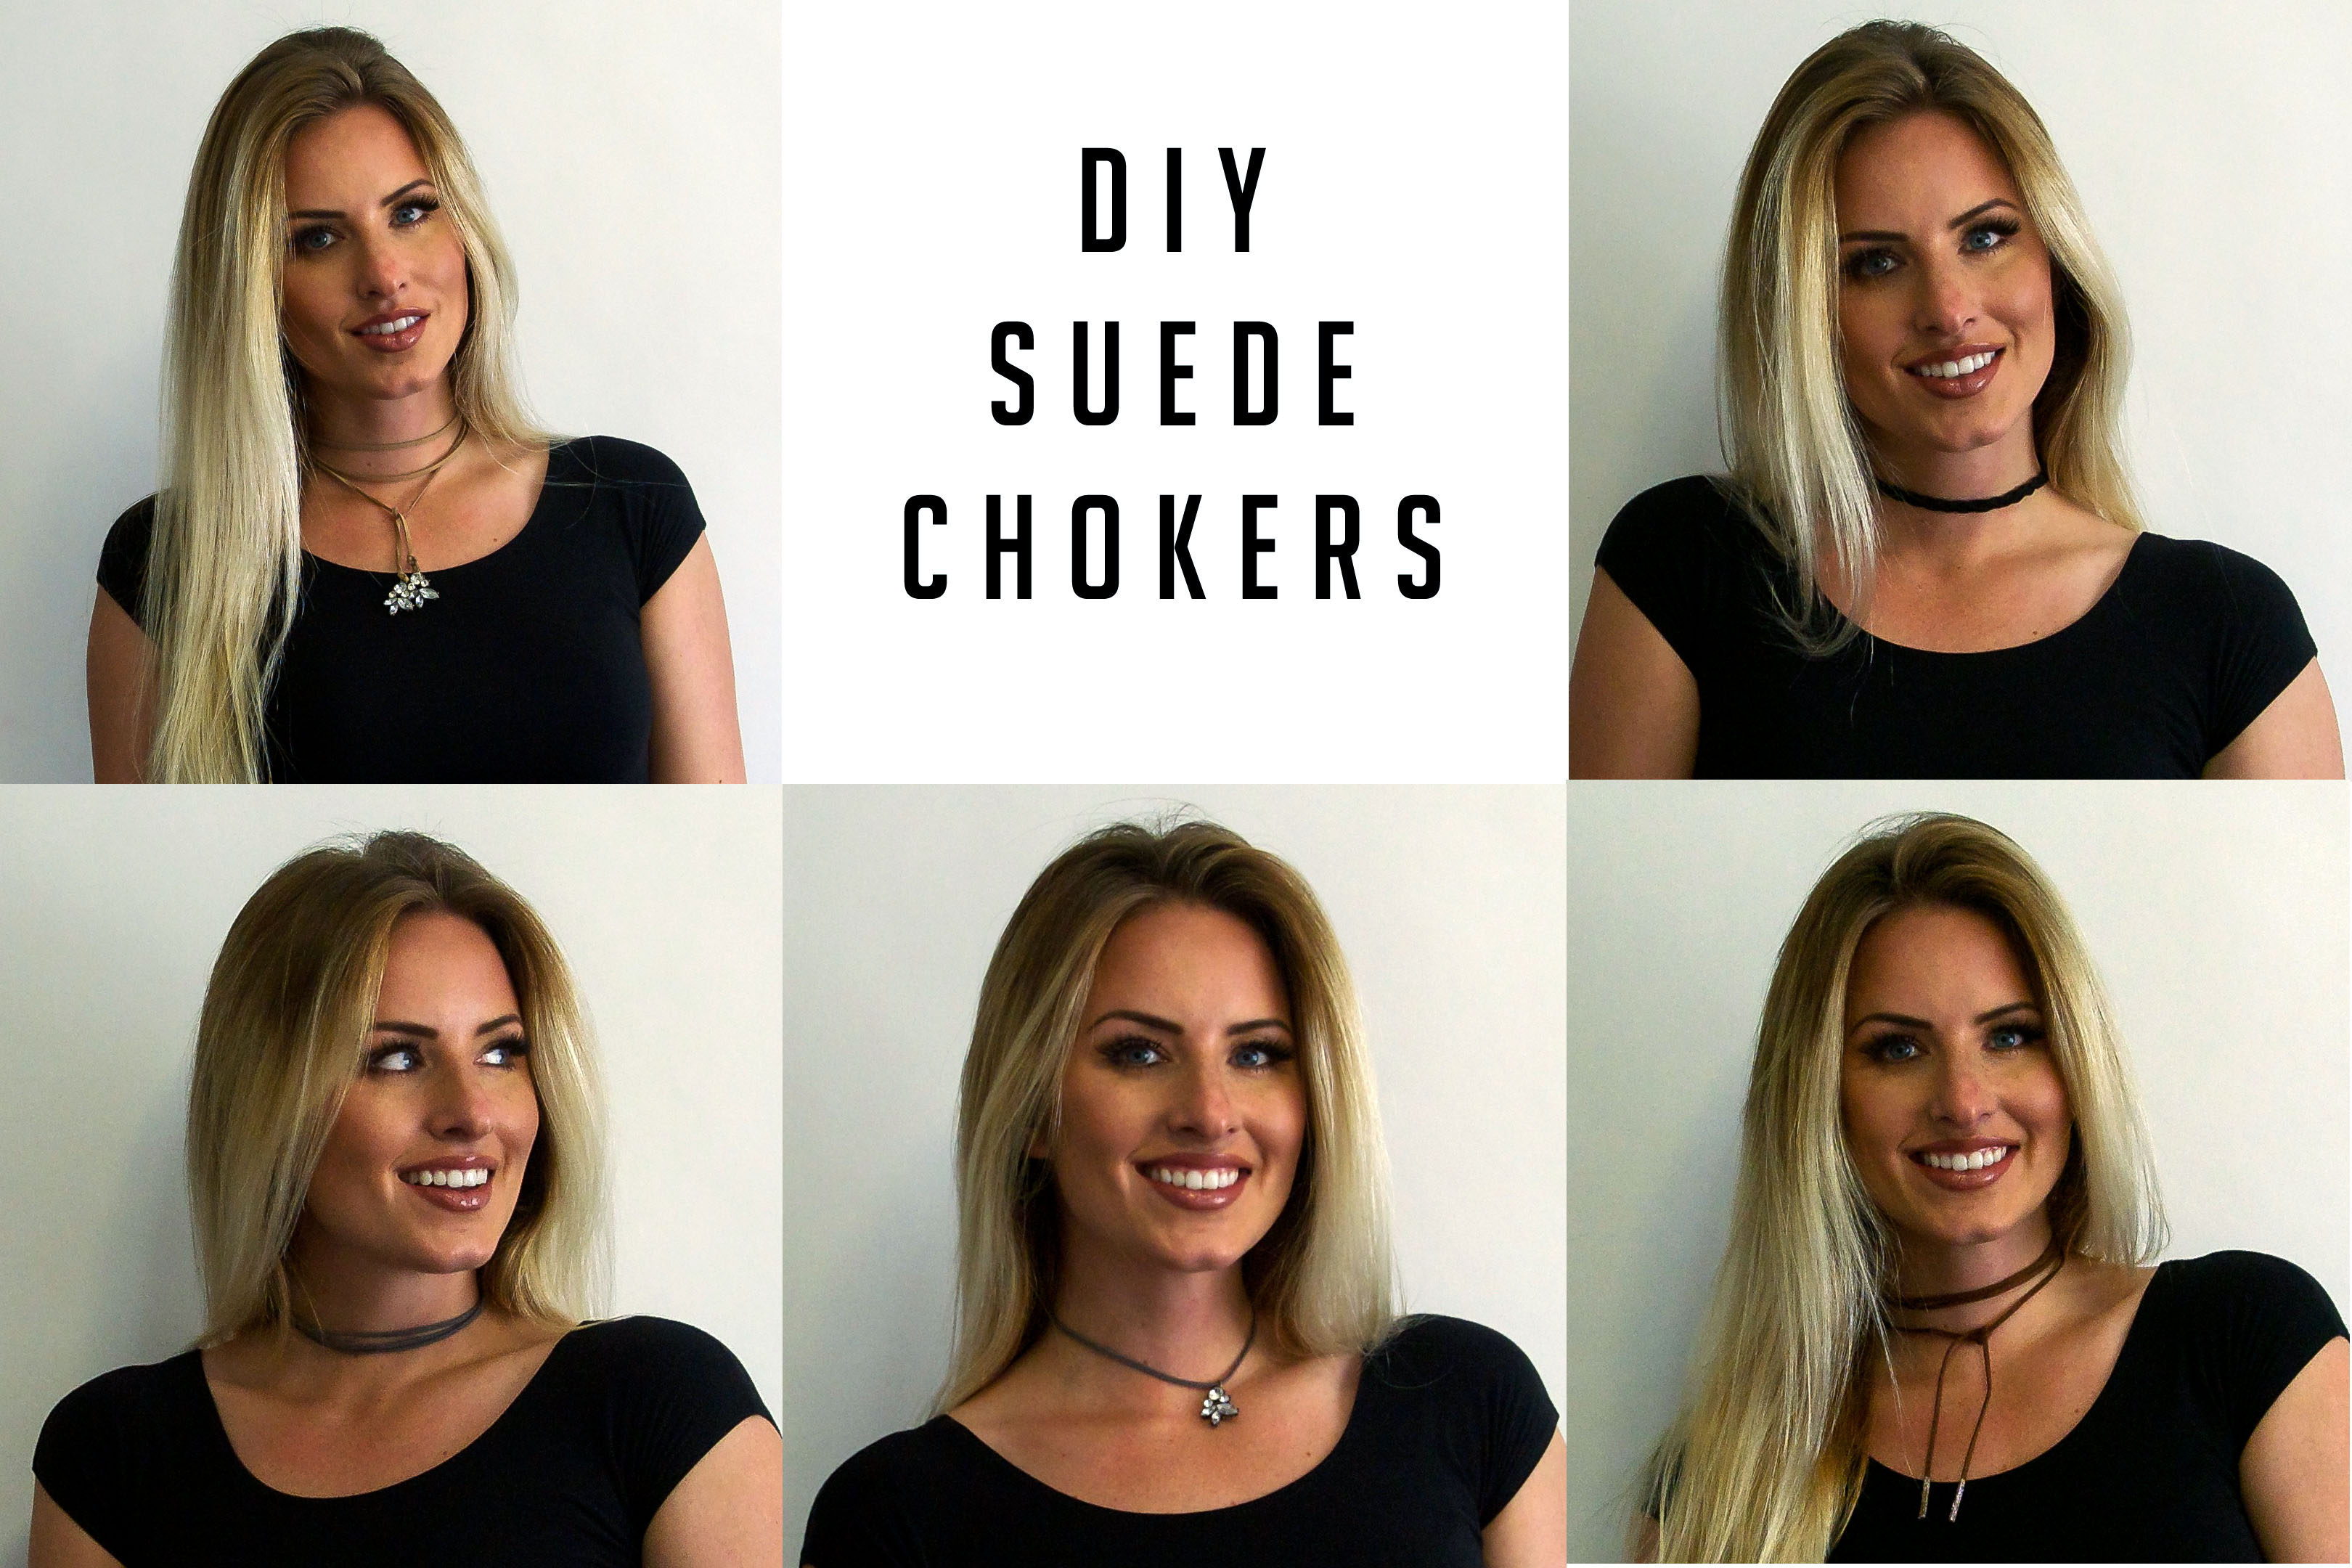 DIY Suede Chokers quick and easy.